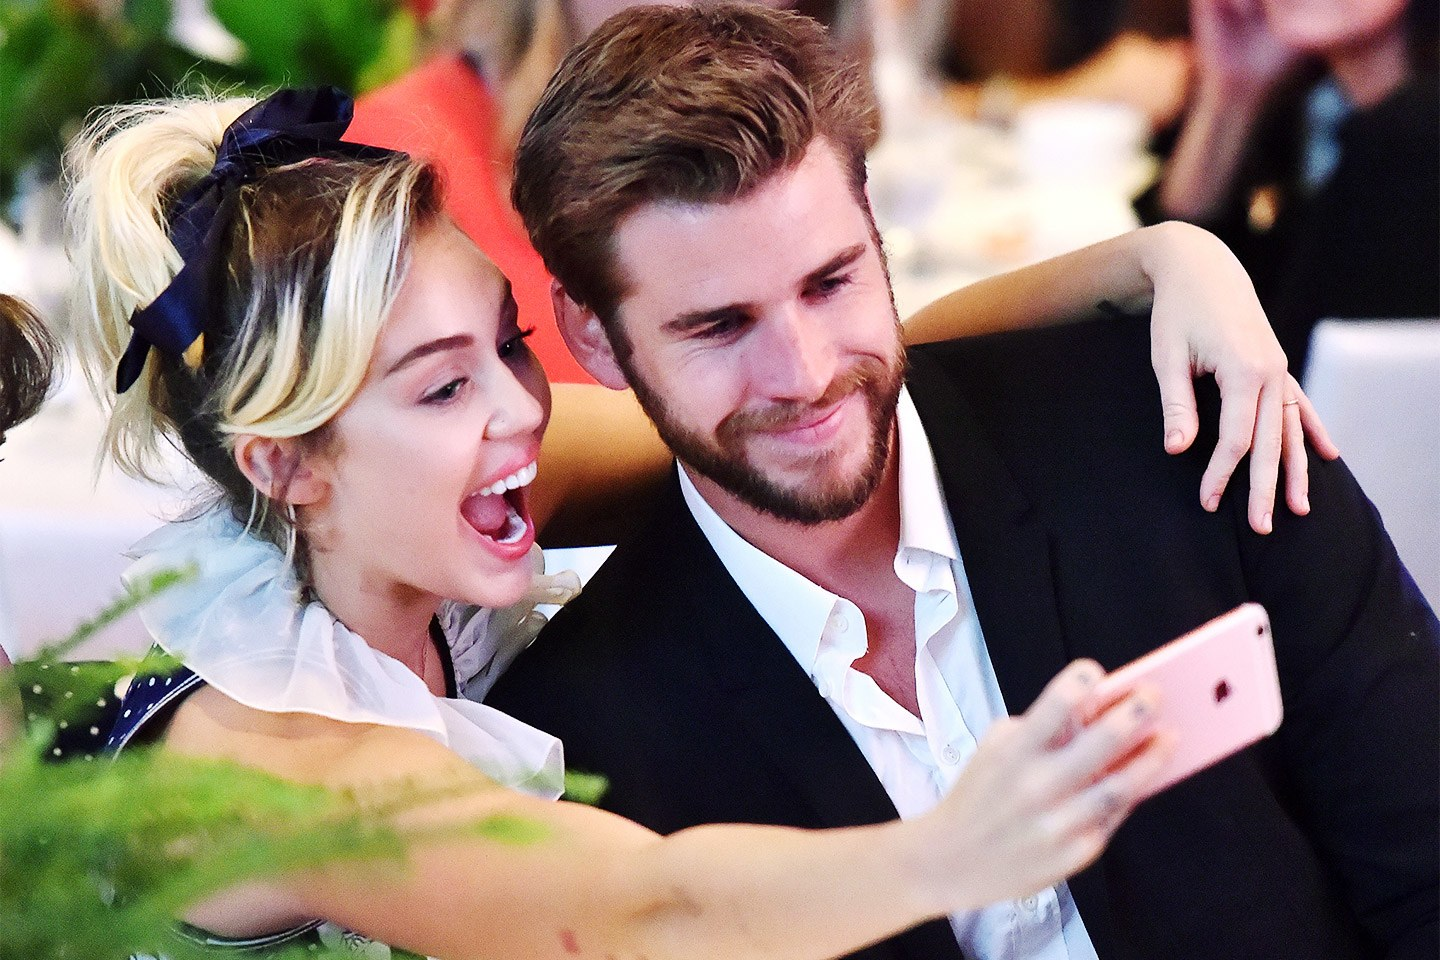 miley-and-liam-wedding-rumors